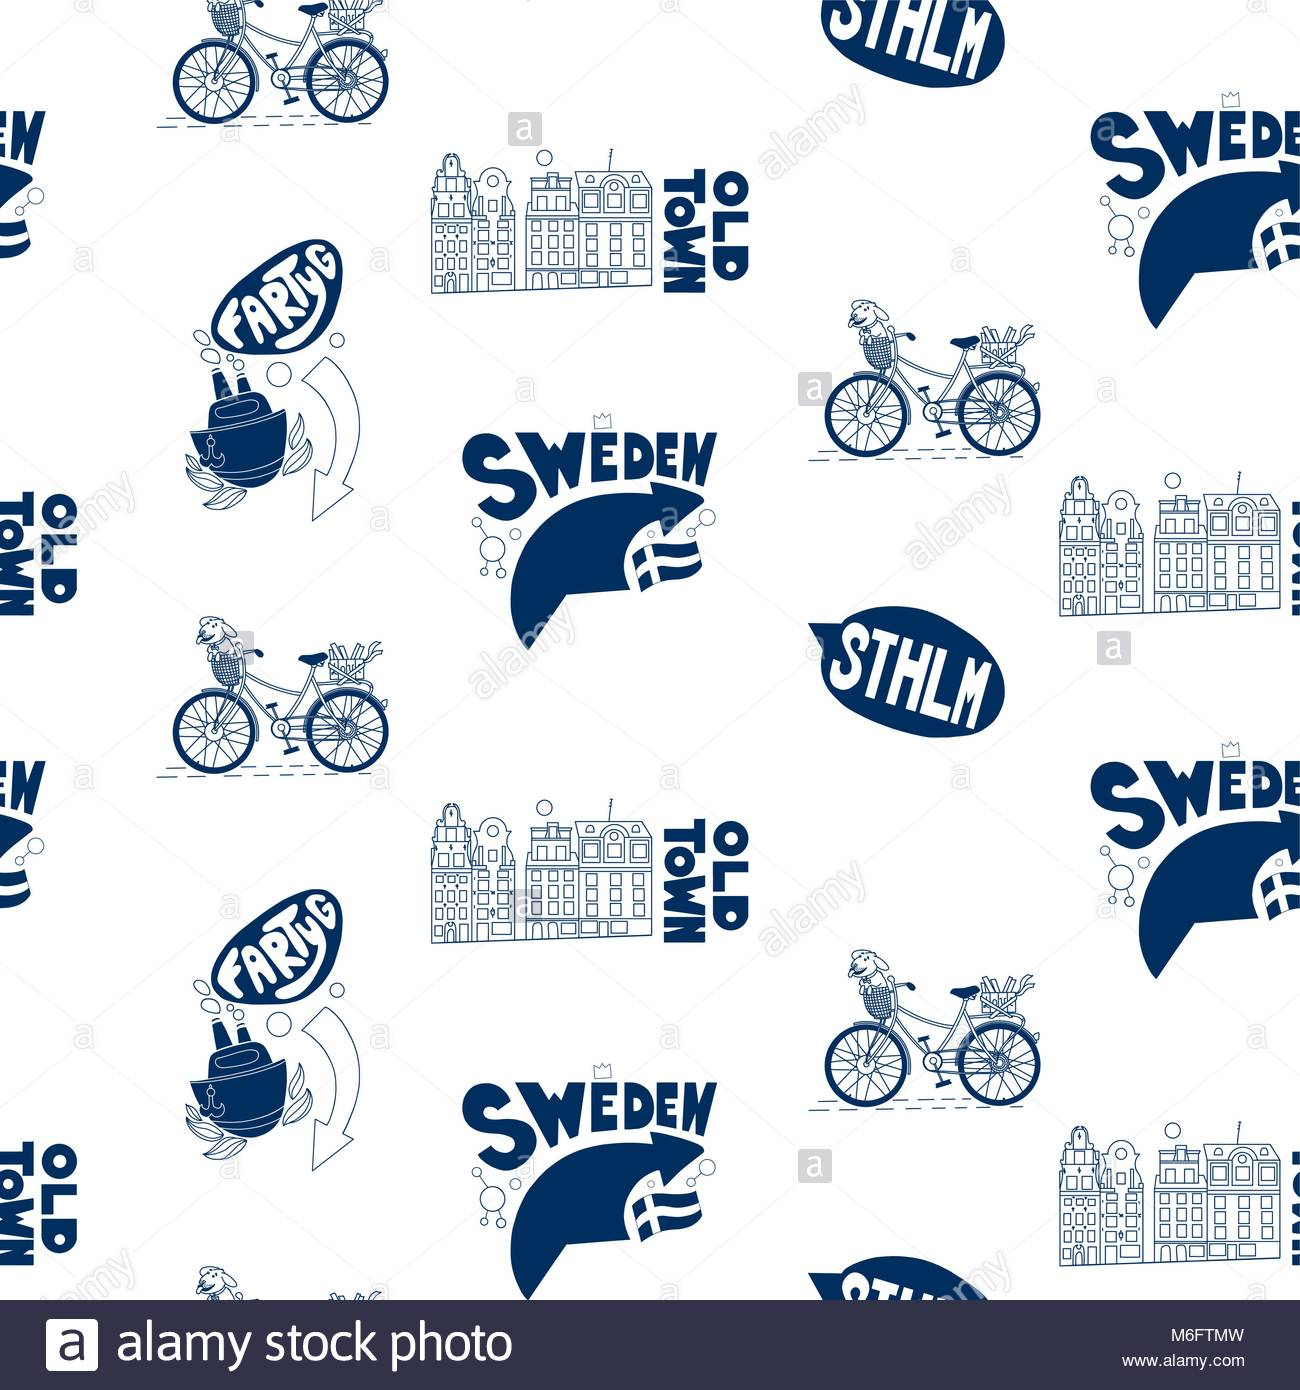 Seamless pattern with Stockholm's elements on white background. Good for souvenirs from Sweden - typical swedish - Stock Image